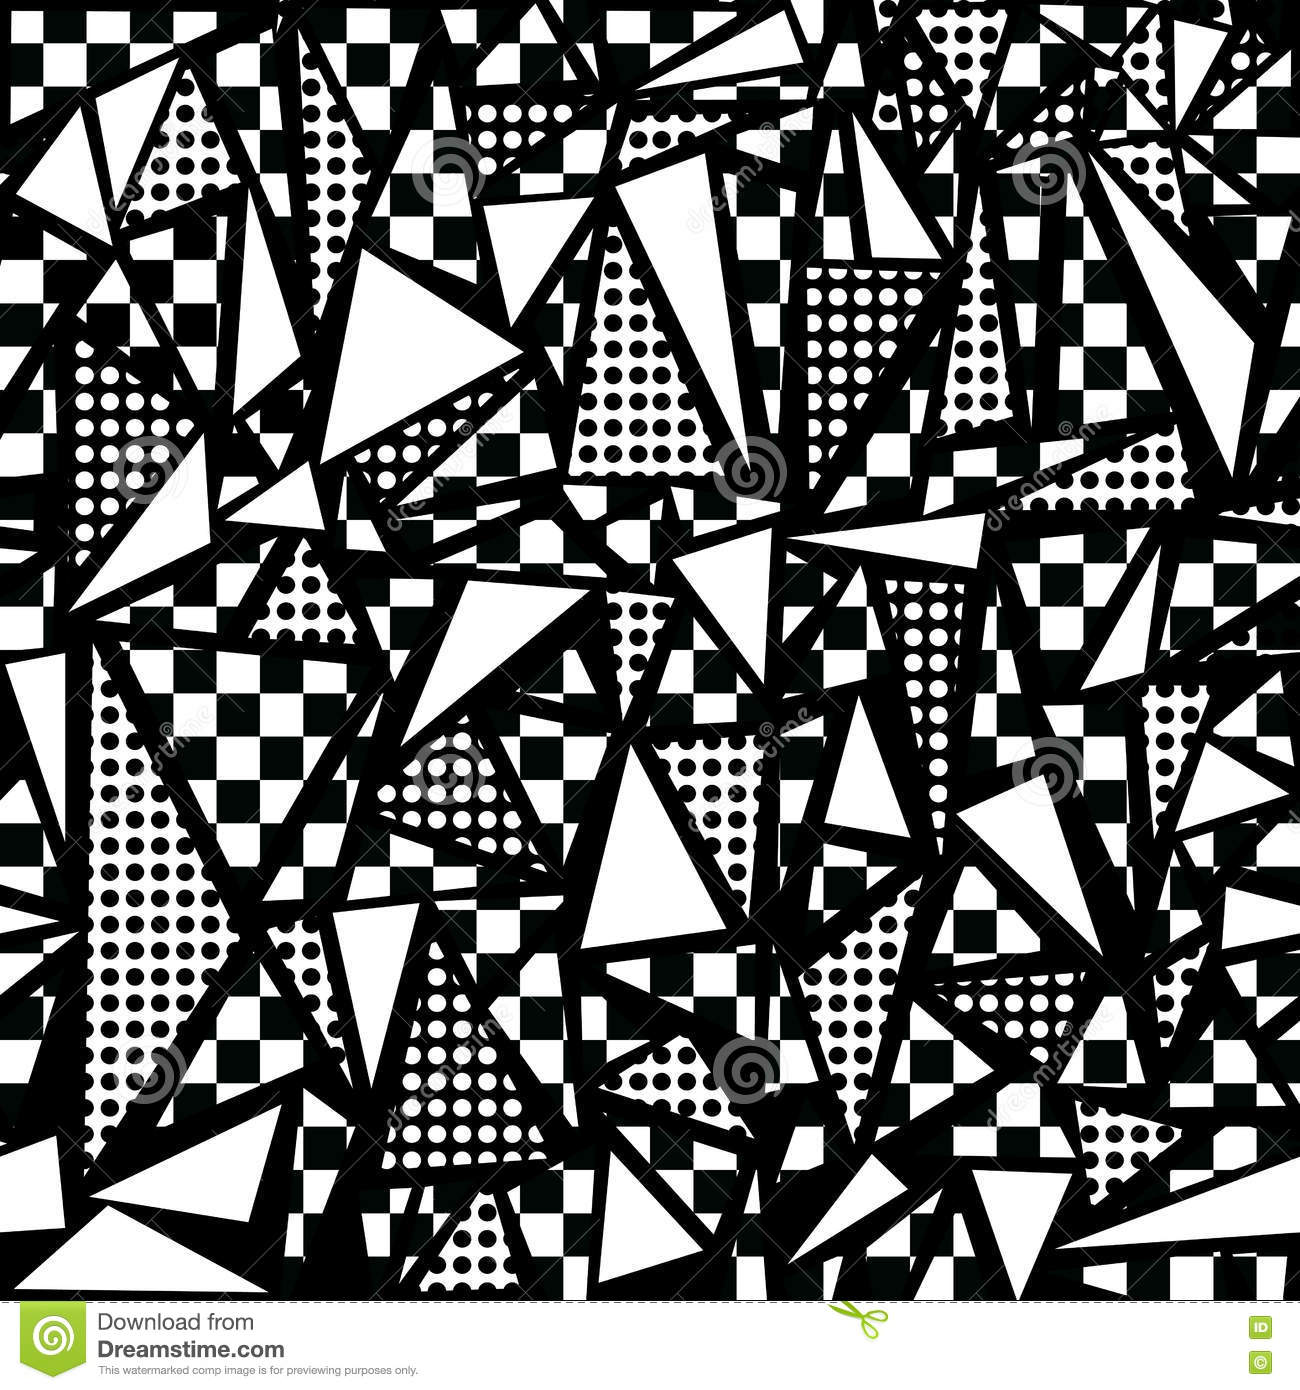 80s Geometric Seamless Pattern In Black And White Stock Vector ... for Geometric Shapes Design Black And White  166kxo